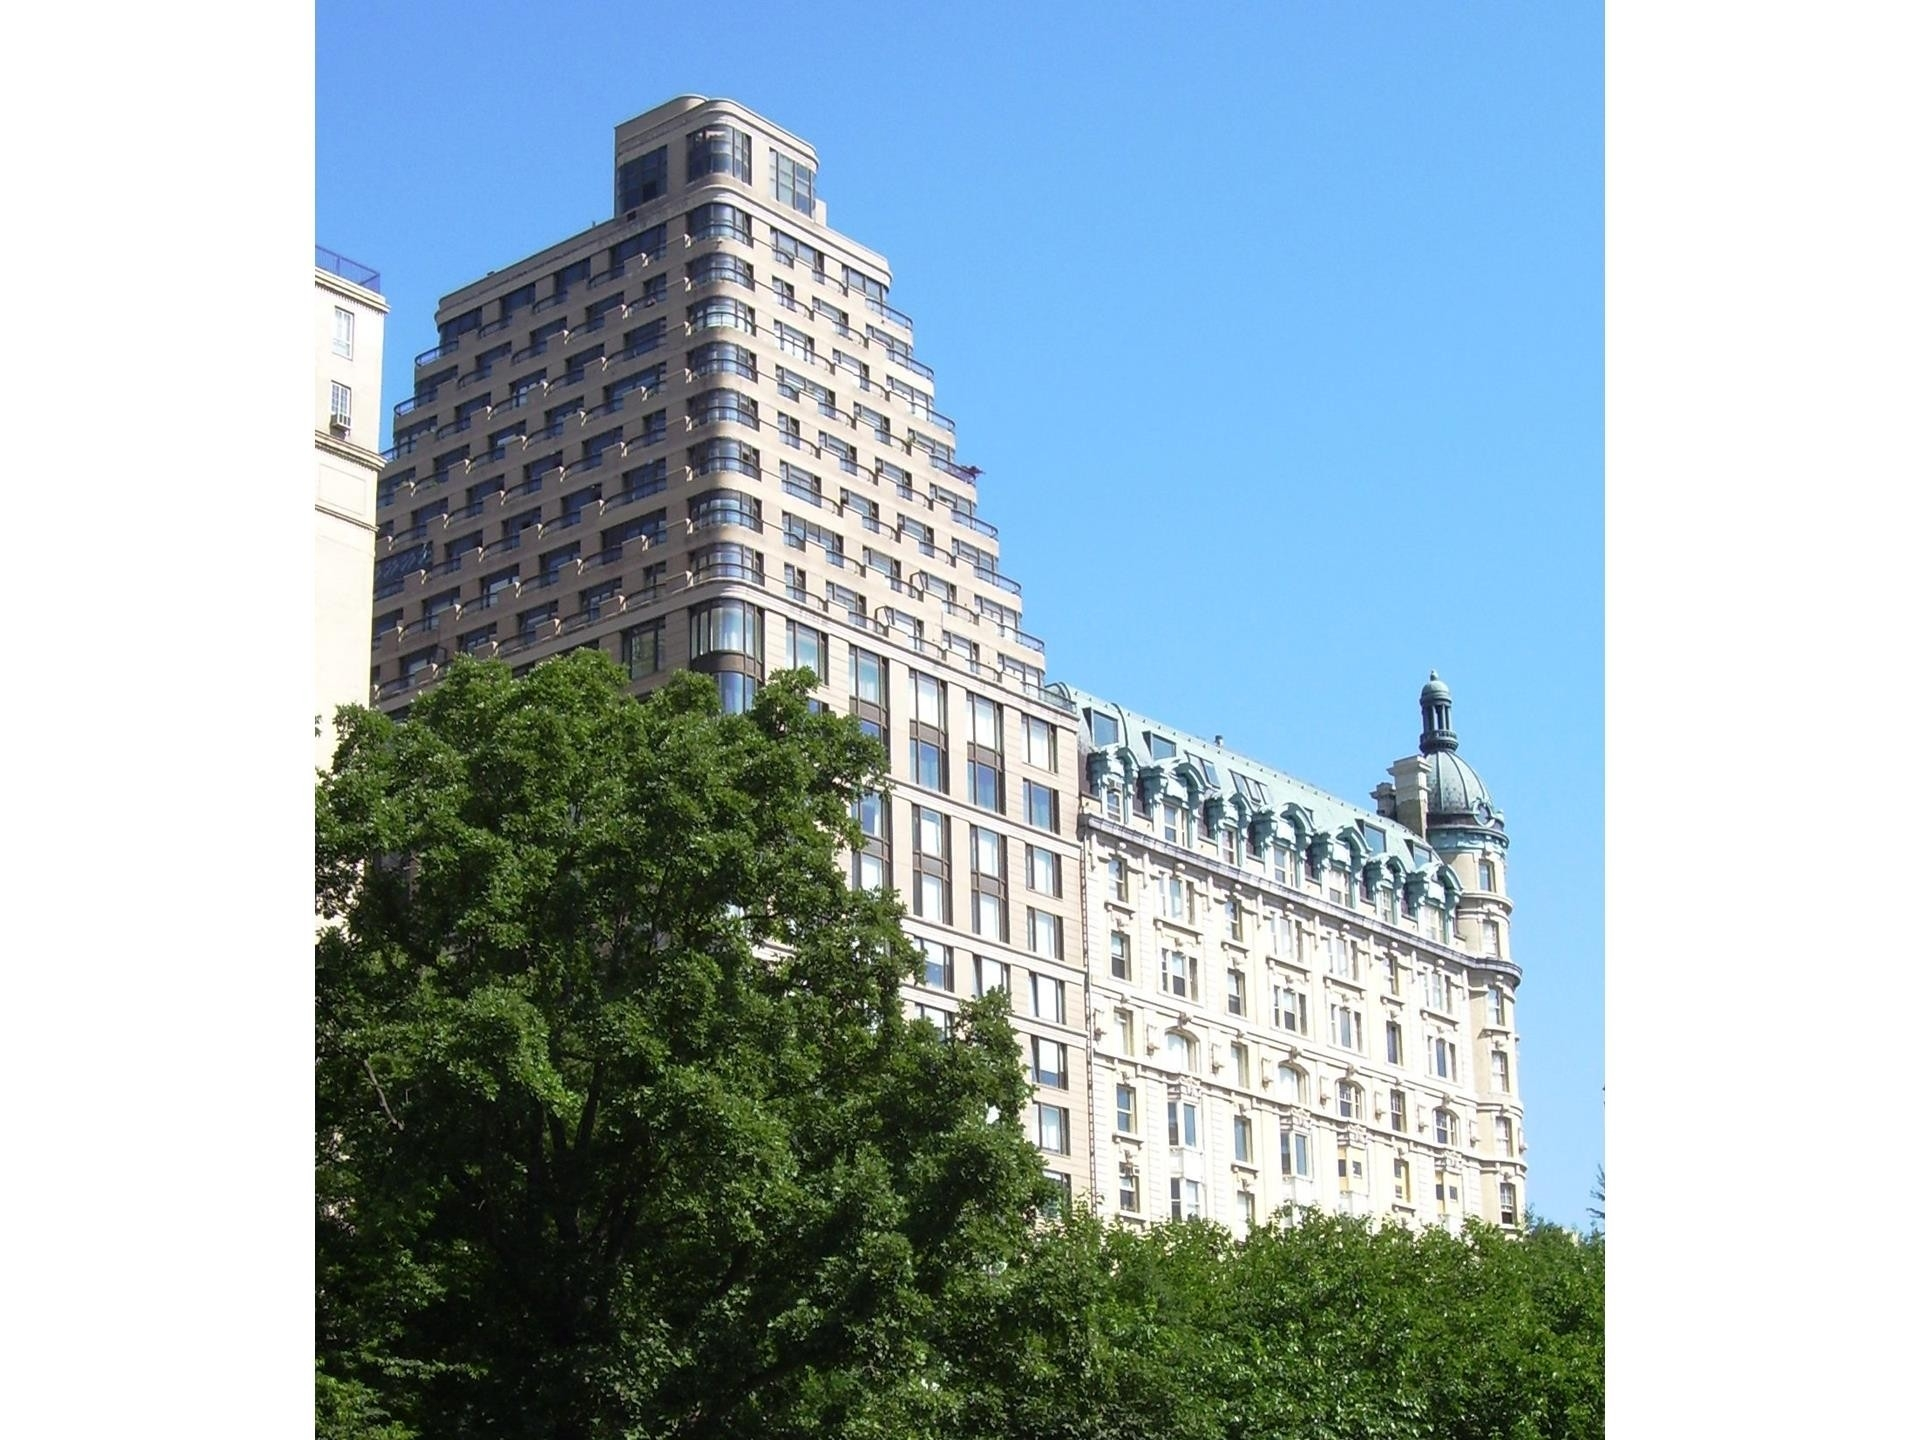 16. Condominiums for Sale at 279 CPW, 279 Central Park West, PHBA Upper West Side, New York, NY 10024